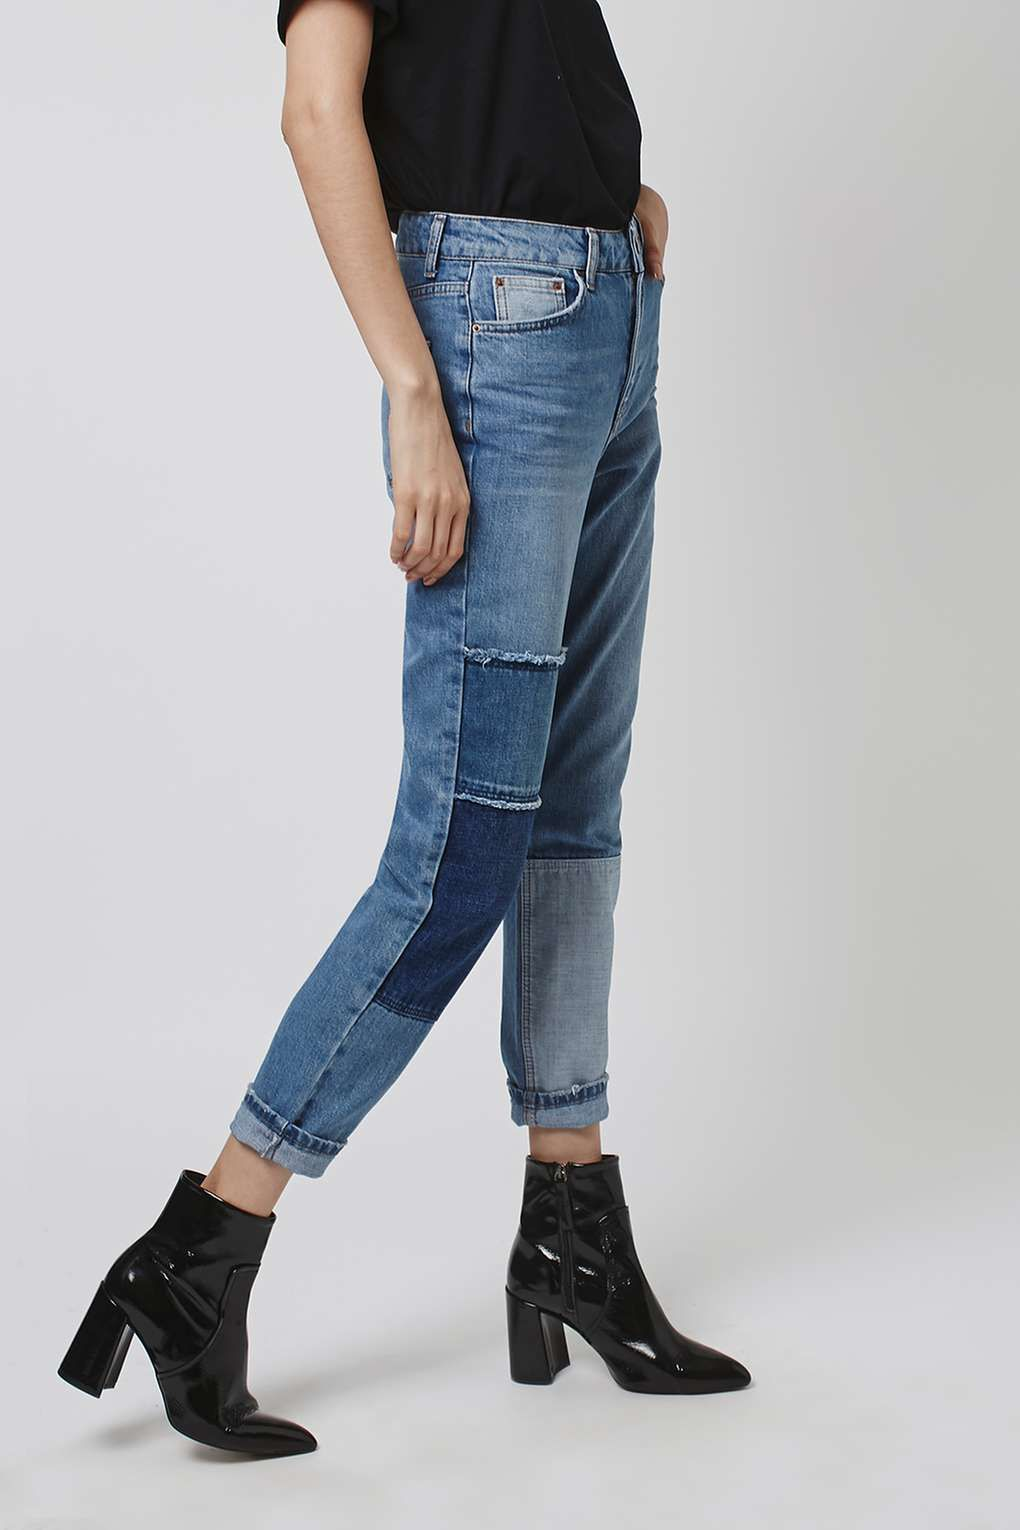 0bb19eaa14c0 MOTO Patchwork Mom Jeans in 2019 | clothes | Jeans, Patchwork jeans ...